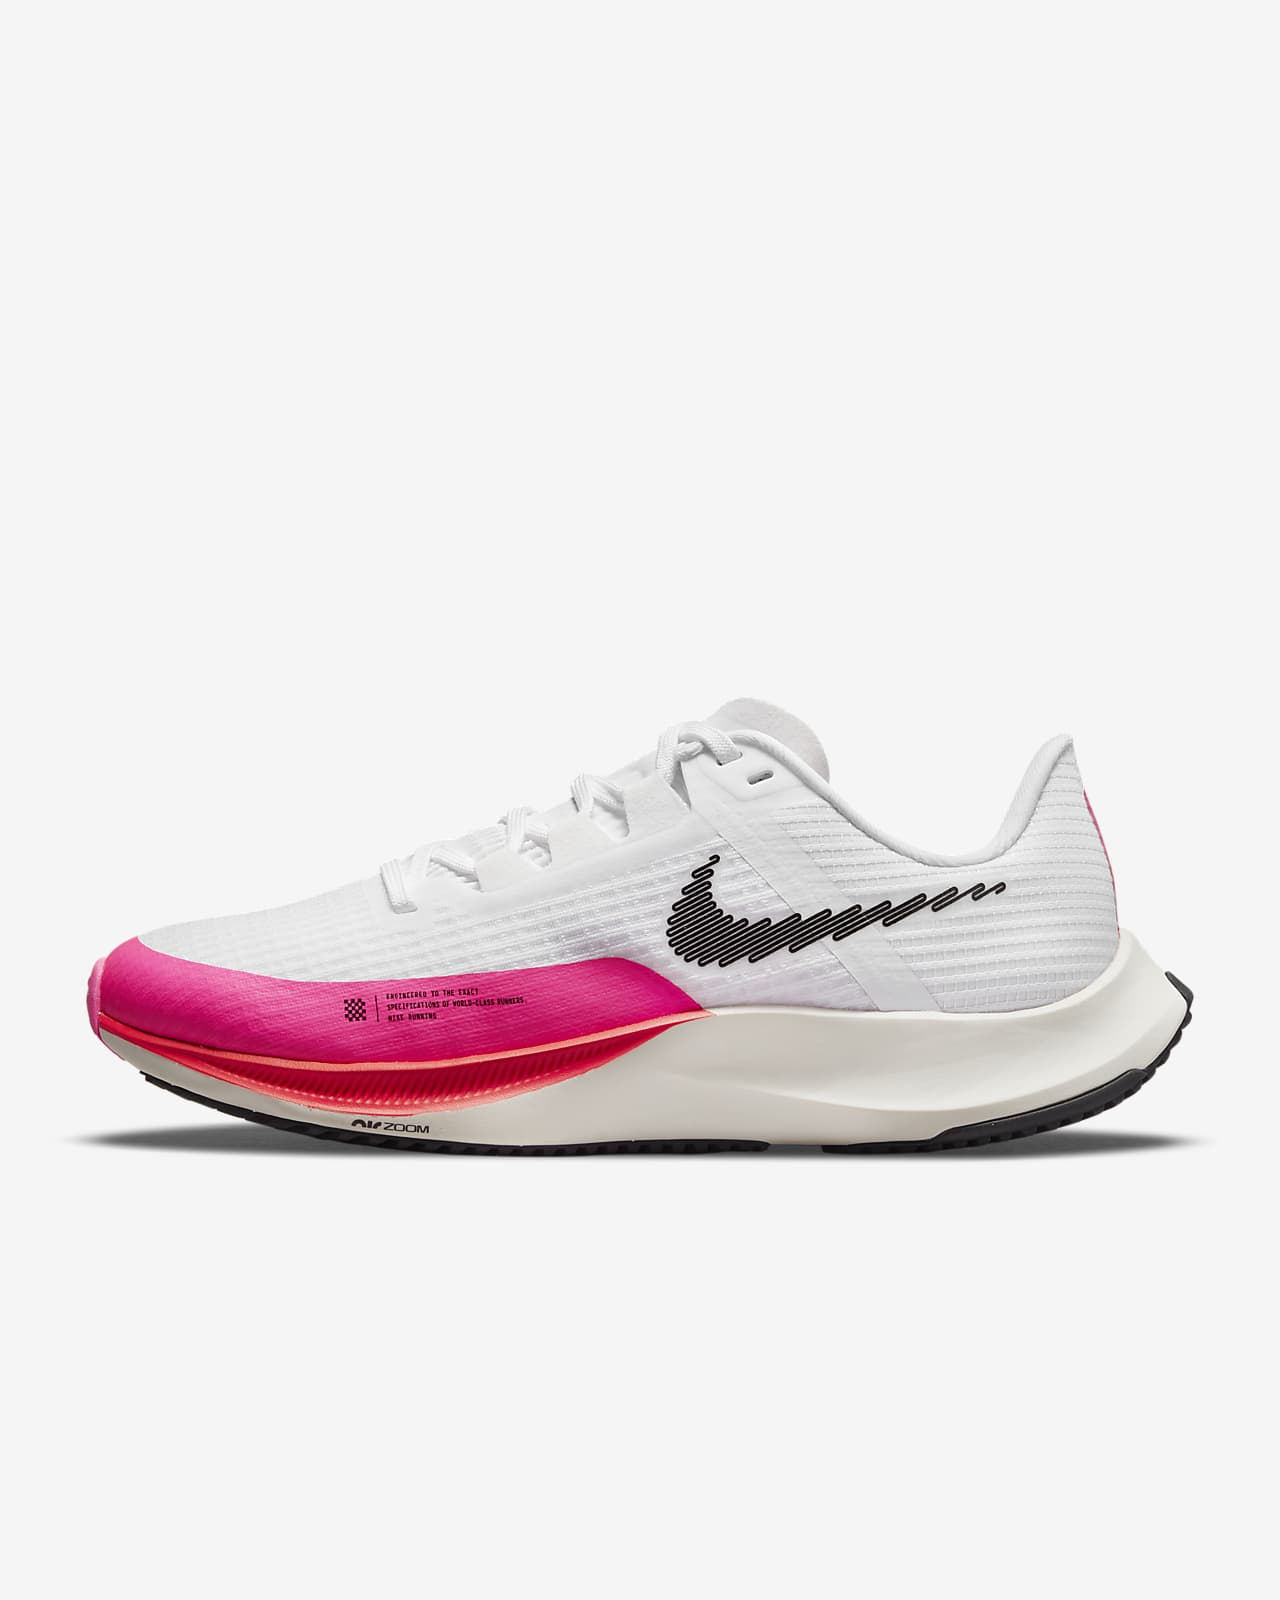 Nike Air Zoom Rival Fly 3 Women's Road Racing Shoes